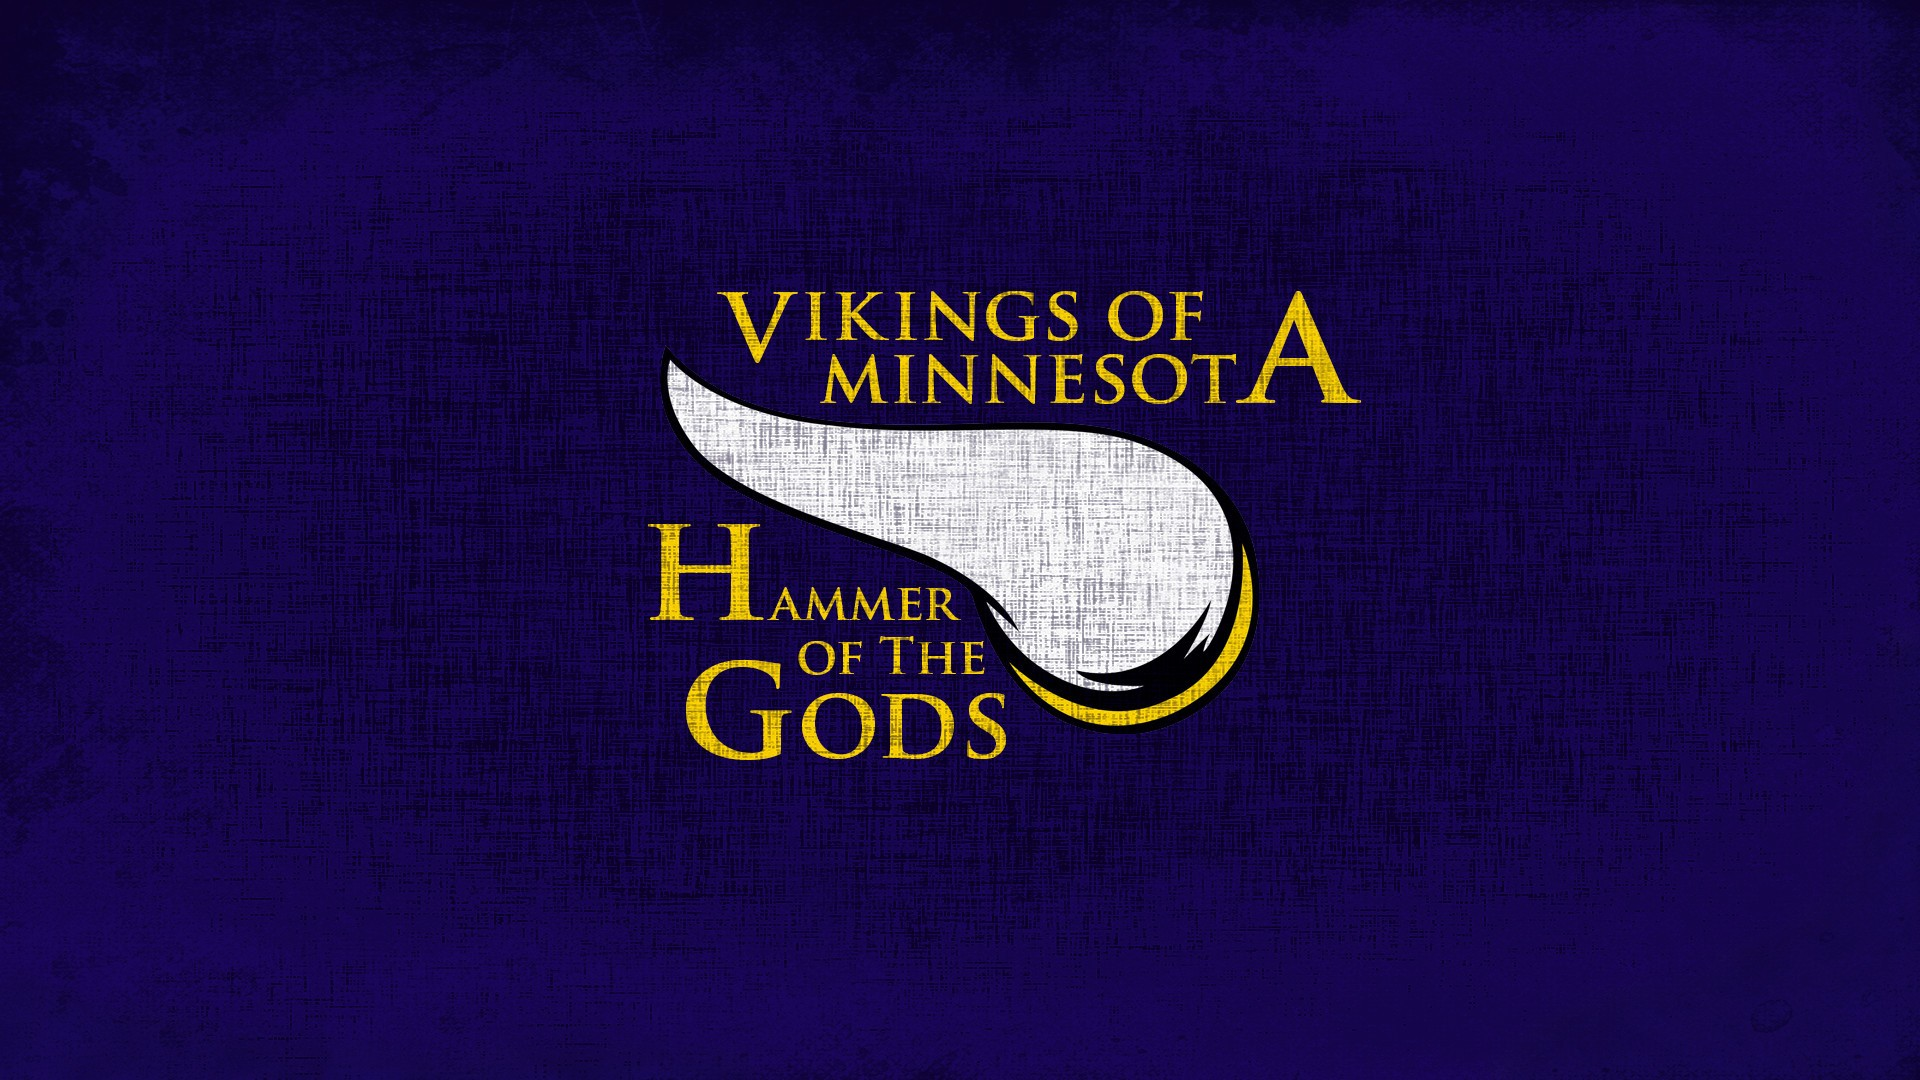 HD Desktop Wallpaper Minnesota Vikings with resolution 1920x1080 pixel. You can make this wallpaper for your Mac or Windows Desktop Background, iPhone, Android or Tablet and another Smartphone device